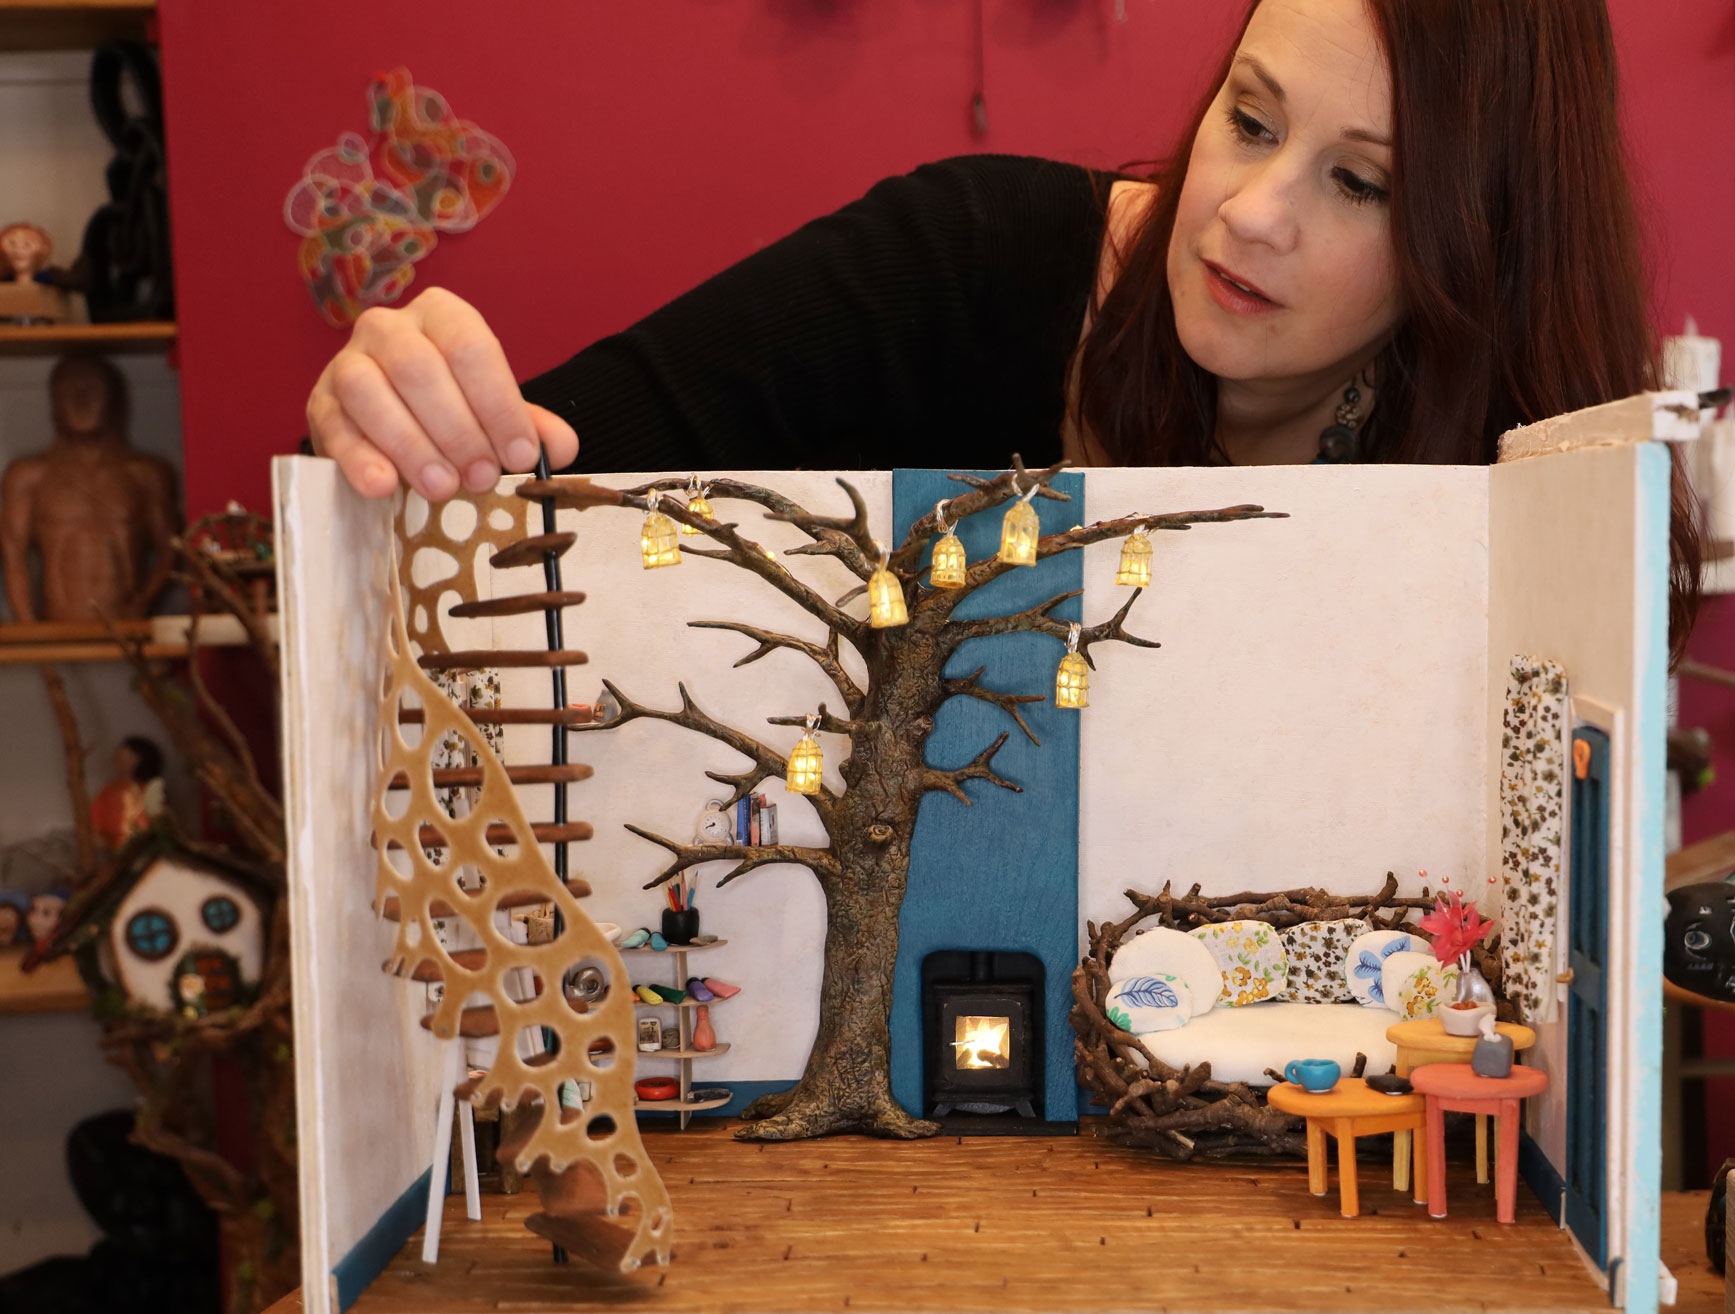 Can crafting support mental health?